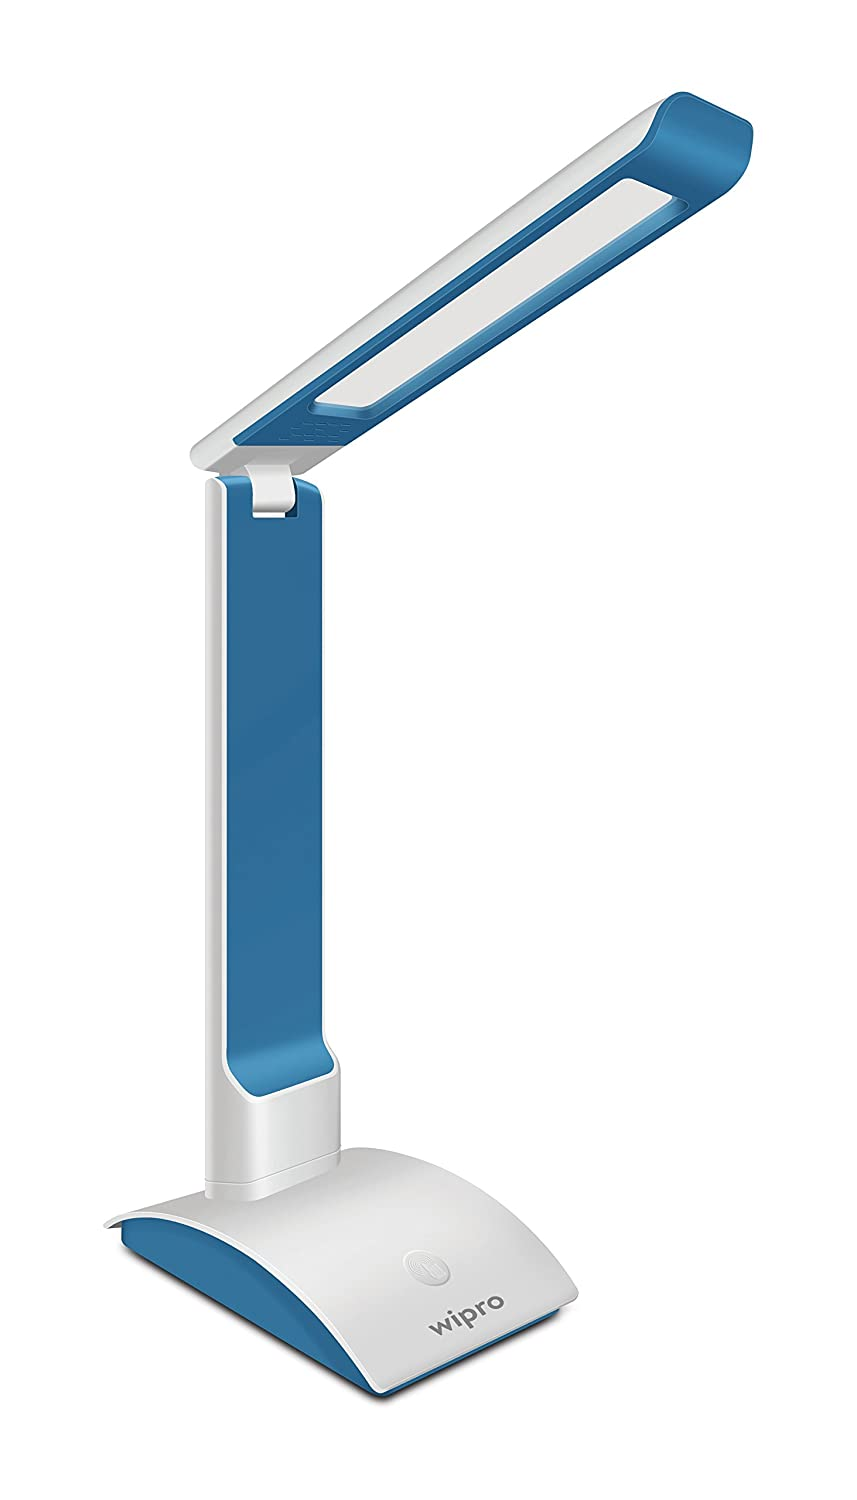 Wipro Symphony 6-Watt Rechargeable LED Table Lamp